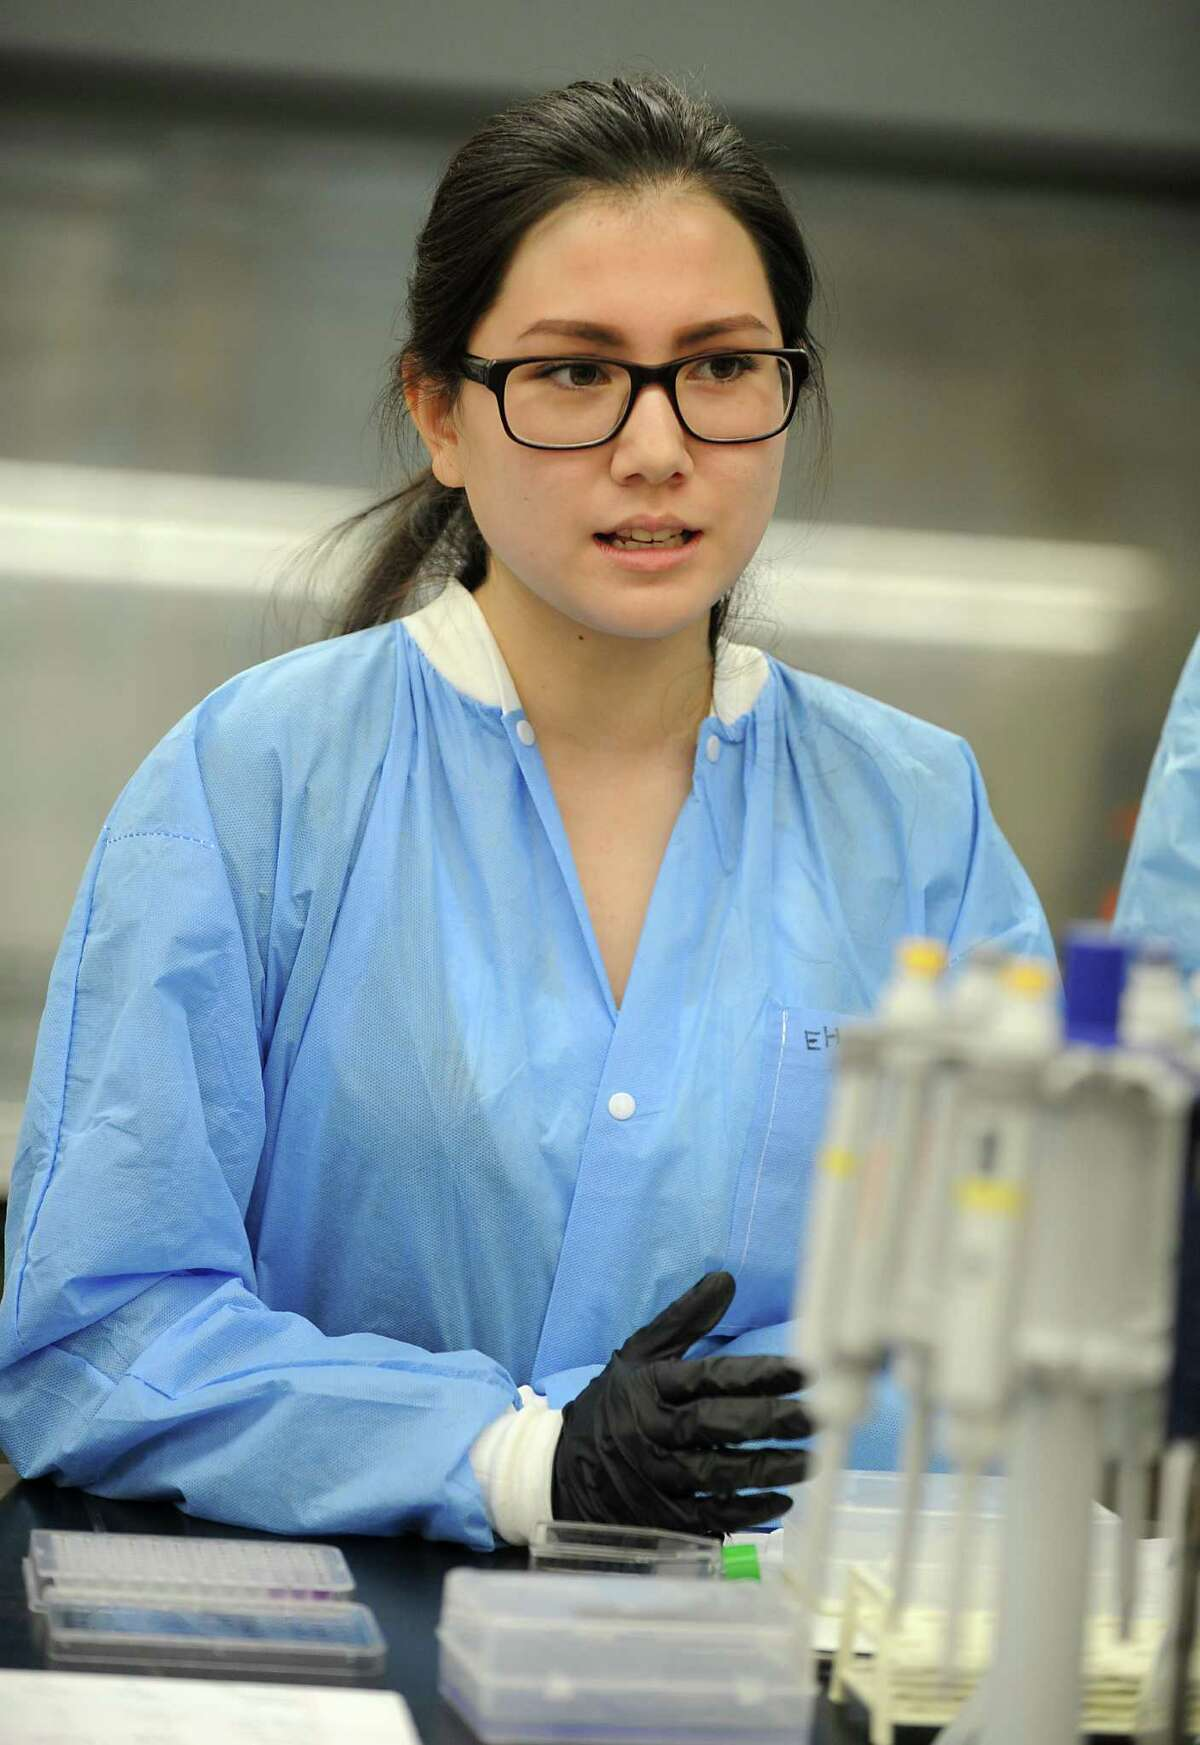 Albany High School student Emily Ha, 16, talks about what she's learned at the College of Pharmacy and Health Sciences on Tuesday, Aug. 11, 2015 in Albany, N.Y. The students have been involved in a summer research project at the school. (Lori Van Buren / Times Union)